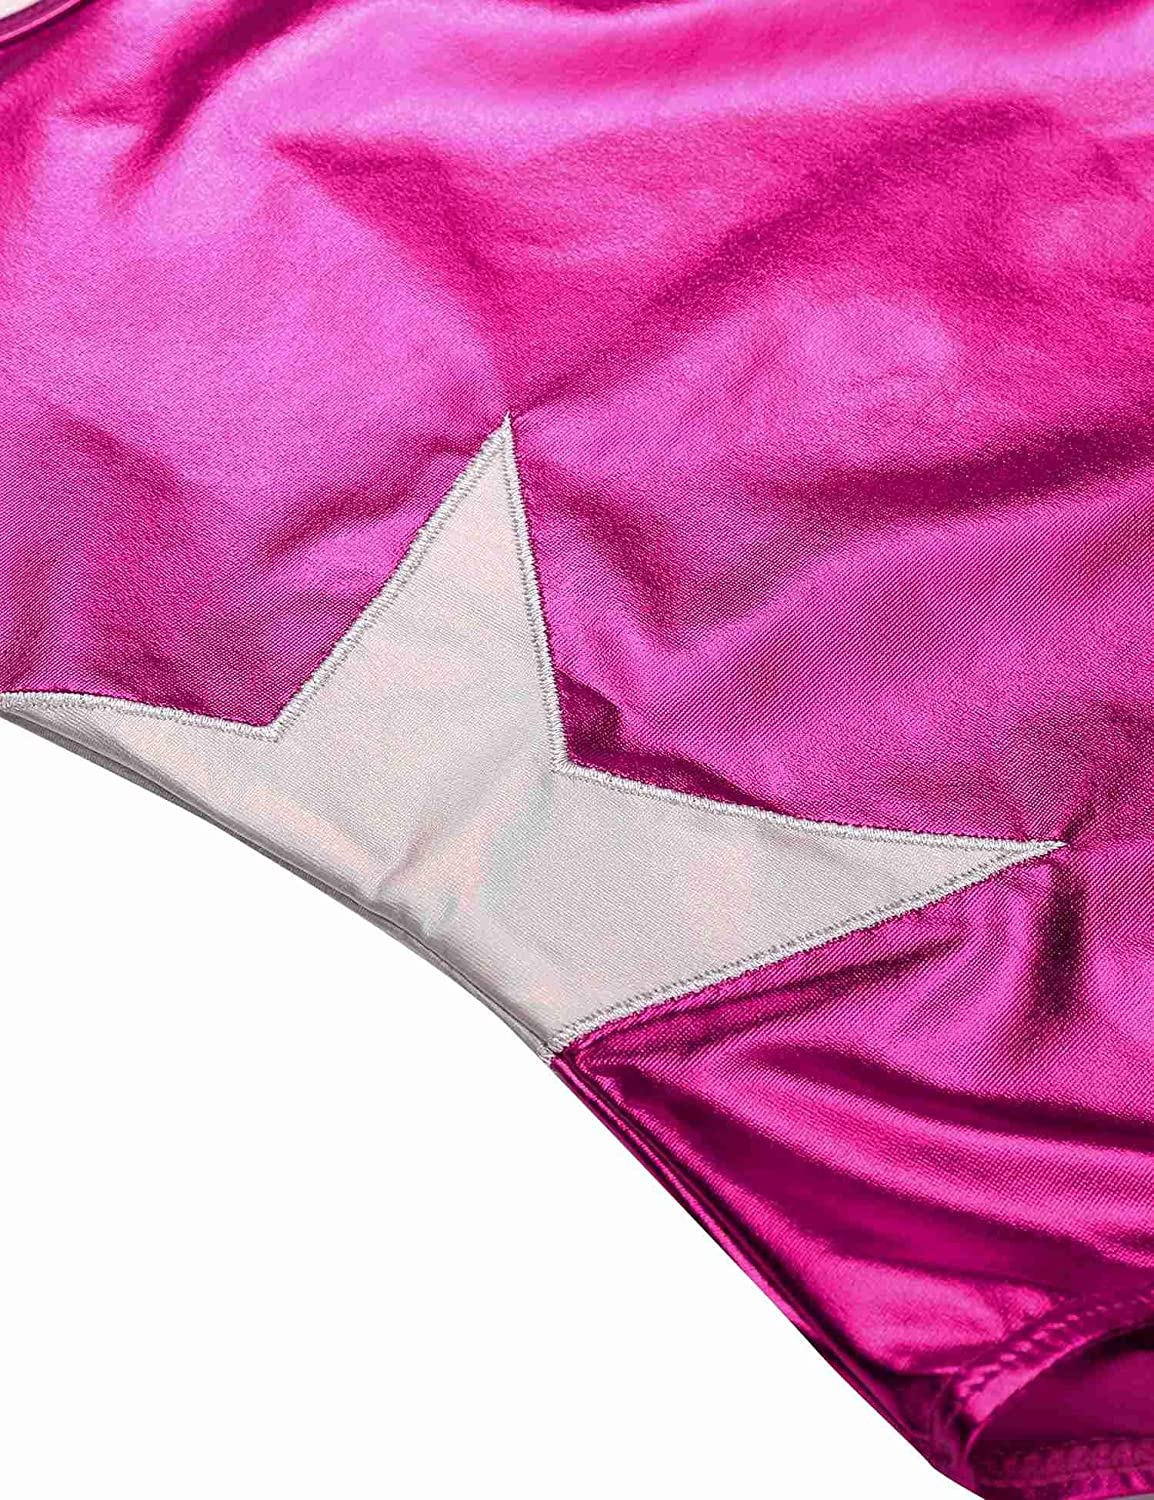 Asatr Girls One-piece Sparkle Dancing Gymnastics Athletic Sleeveless Leotard 2-10Y